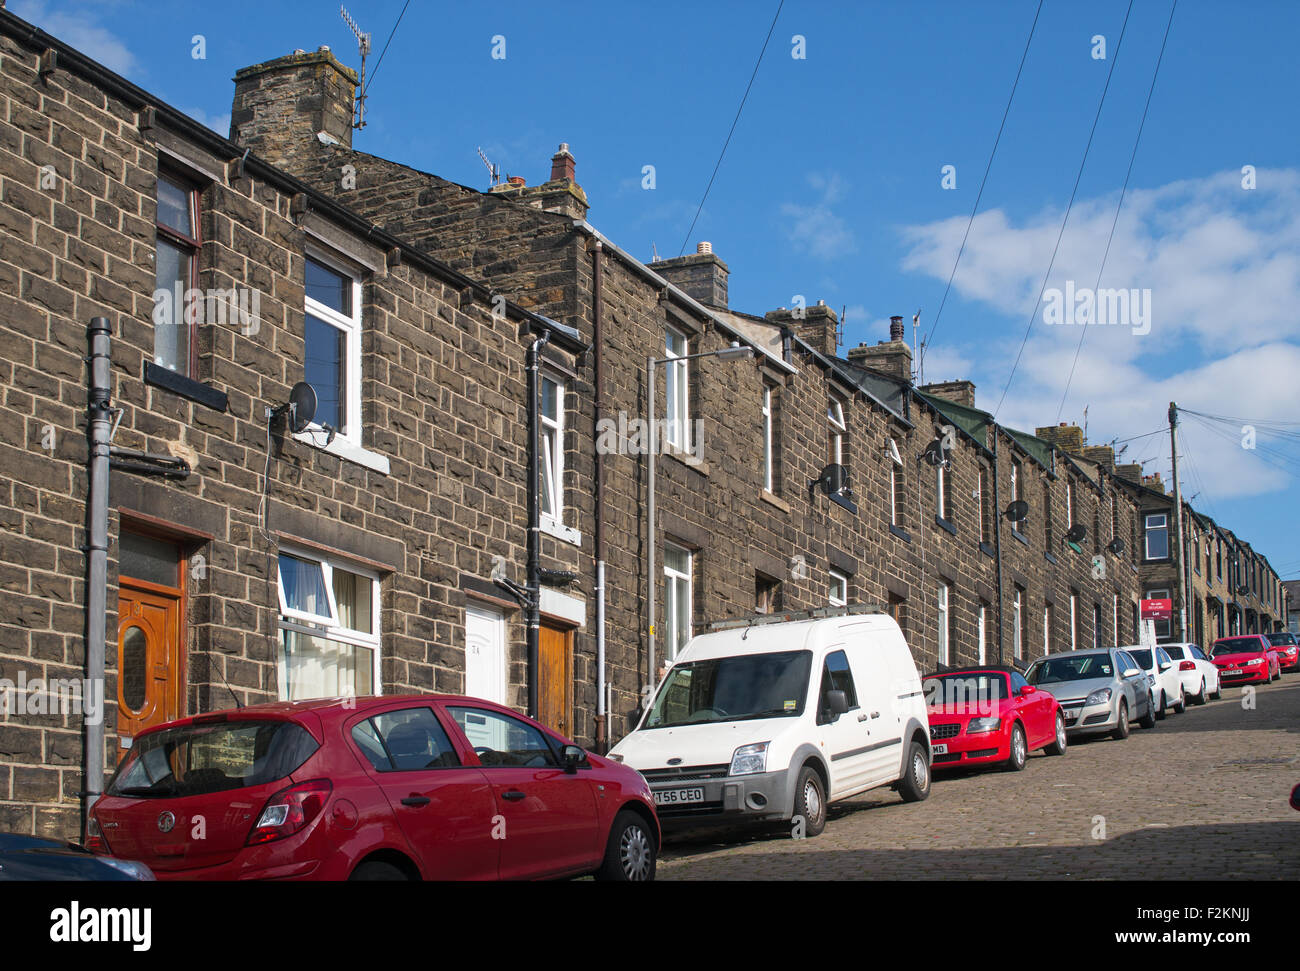 Steeply Sloping Castle Street Of Stone Built Terraced Houses In Skipton,  West Yorkshire England, UK